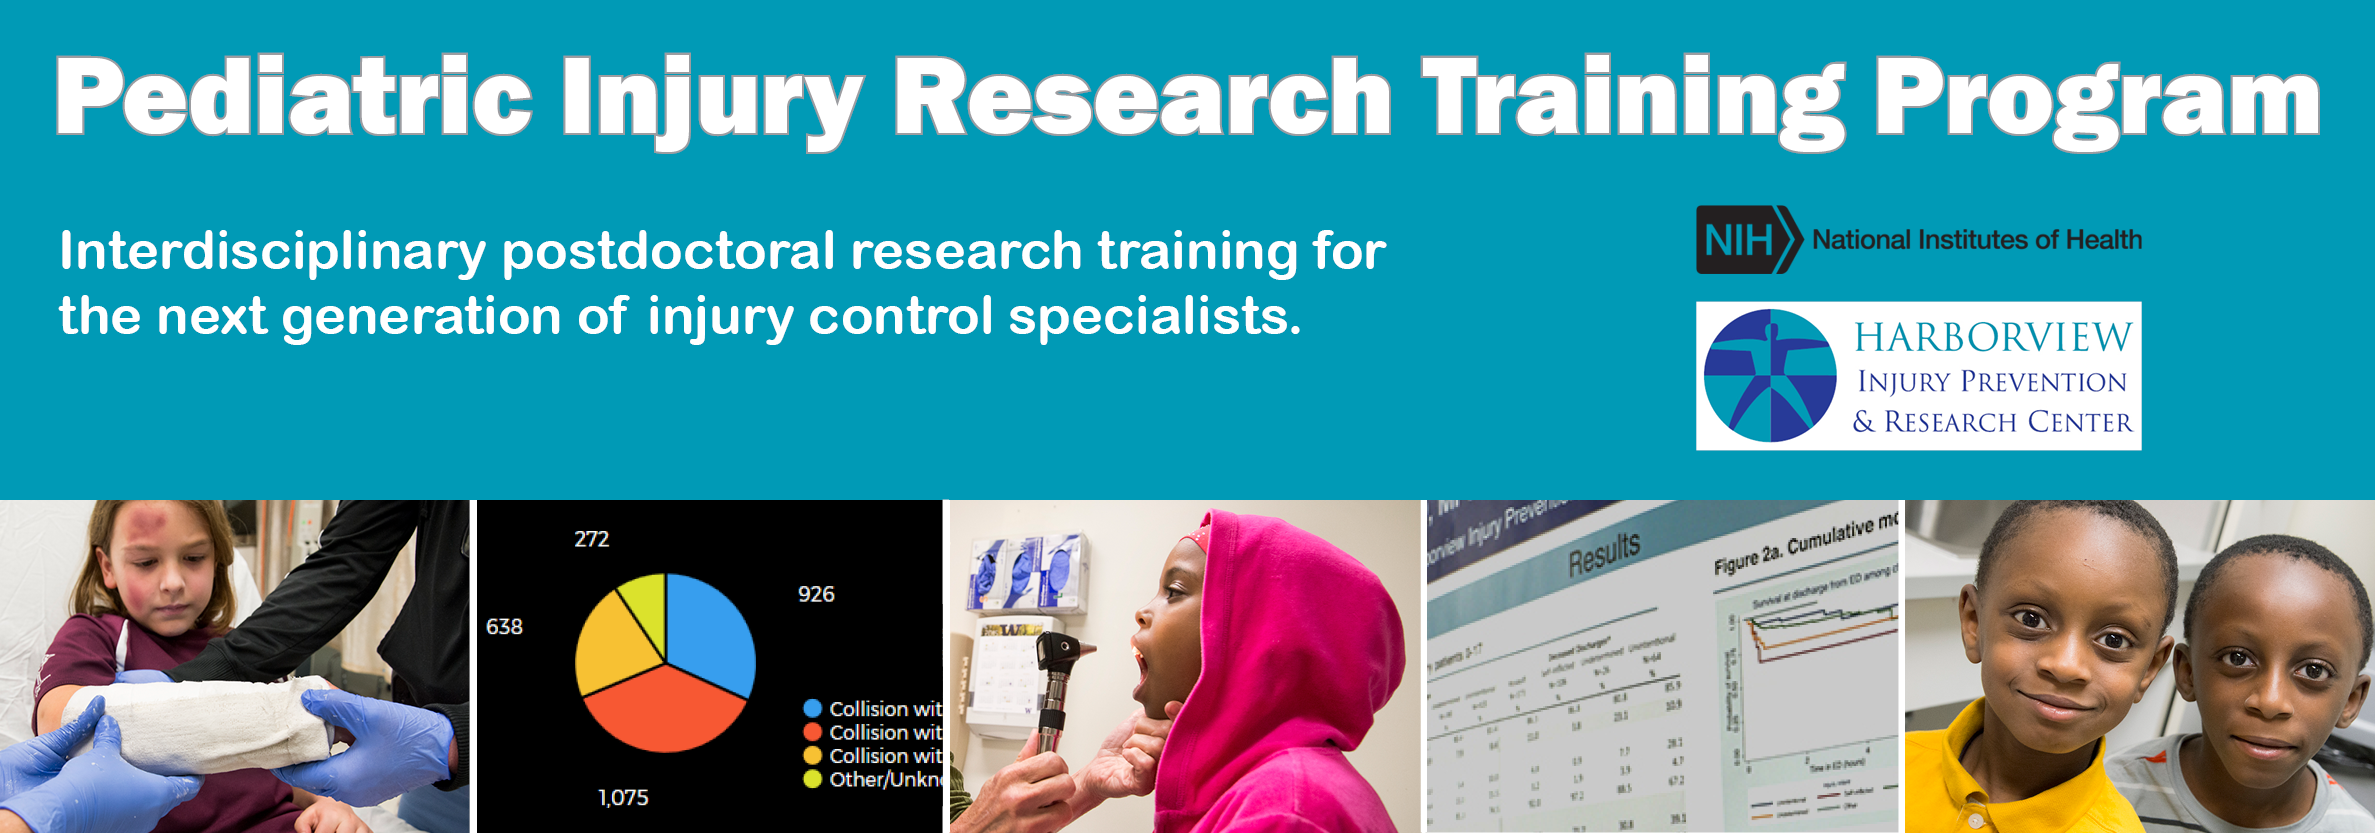 Pediatric Injury Research Training Program: Interdisciplinary postdoctoral research training for the next generation of injury control specialists.